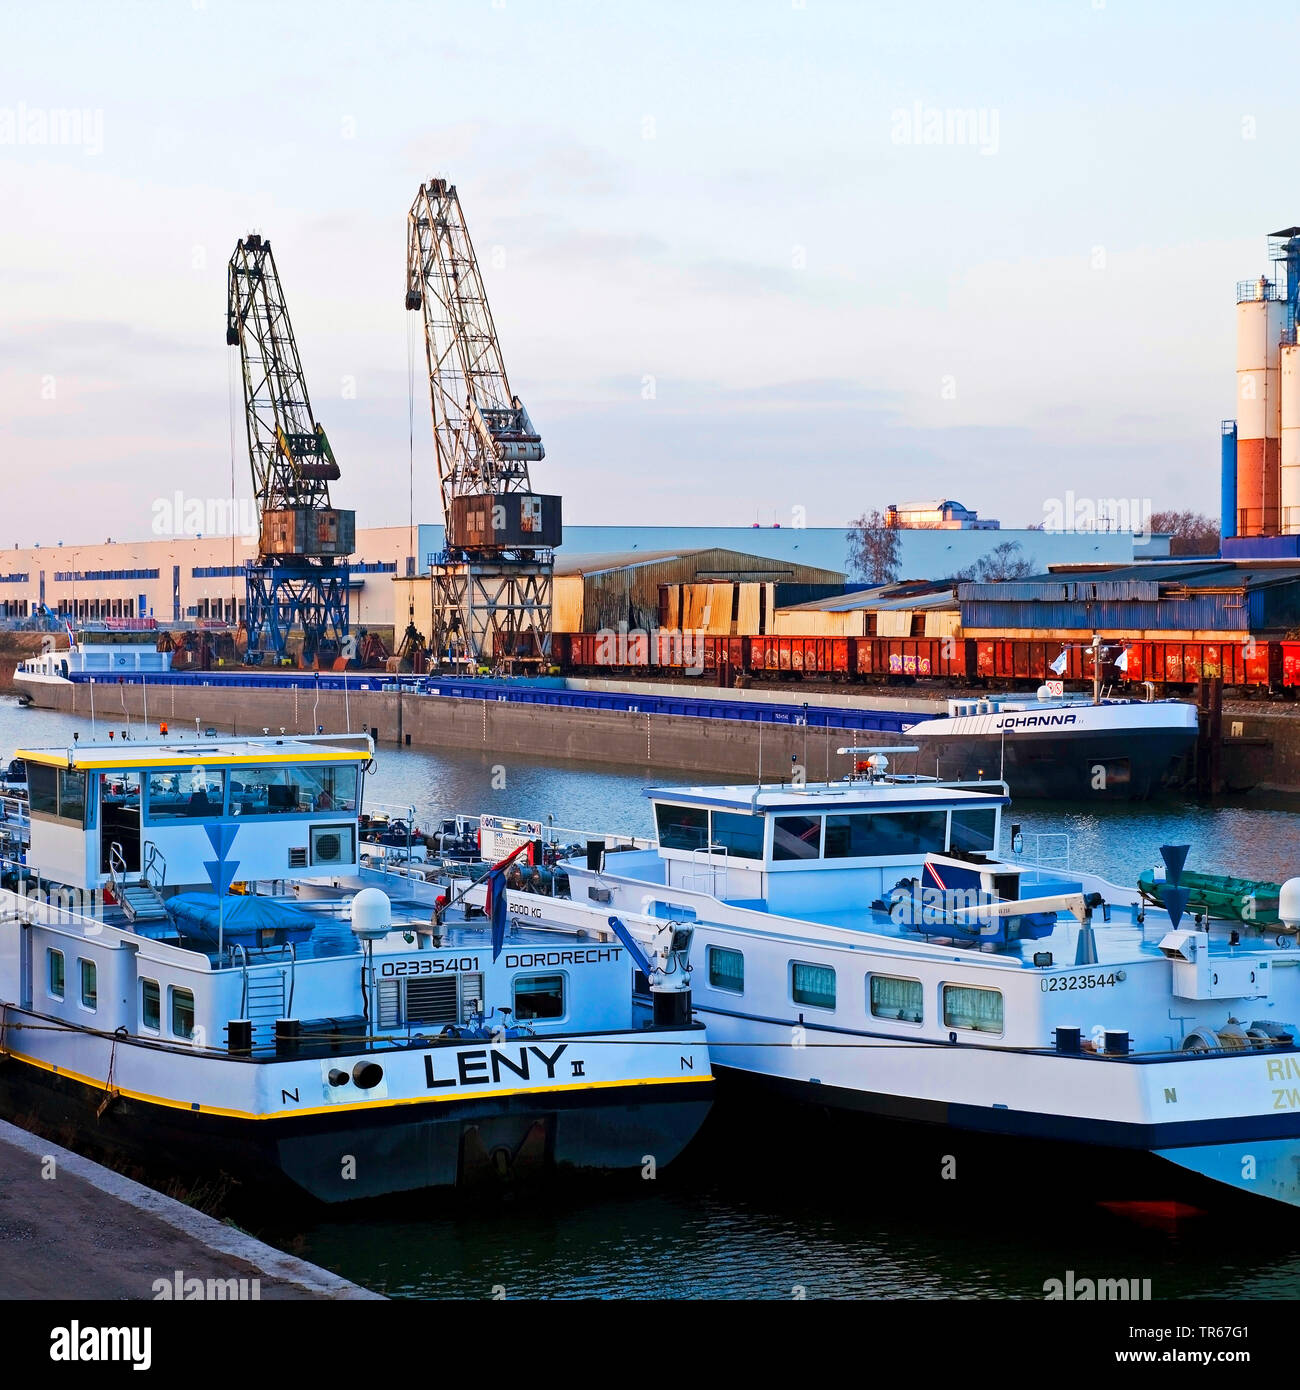 freight ships and cranes in inland port Duisburg, Germany, North Rhine-Westphalia, Ruhr Area, Duisburg Stock Photo